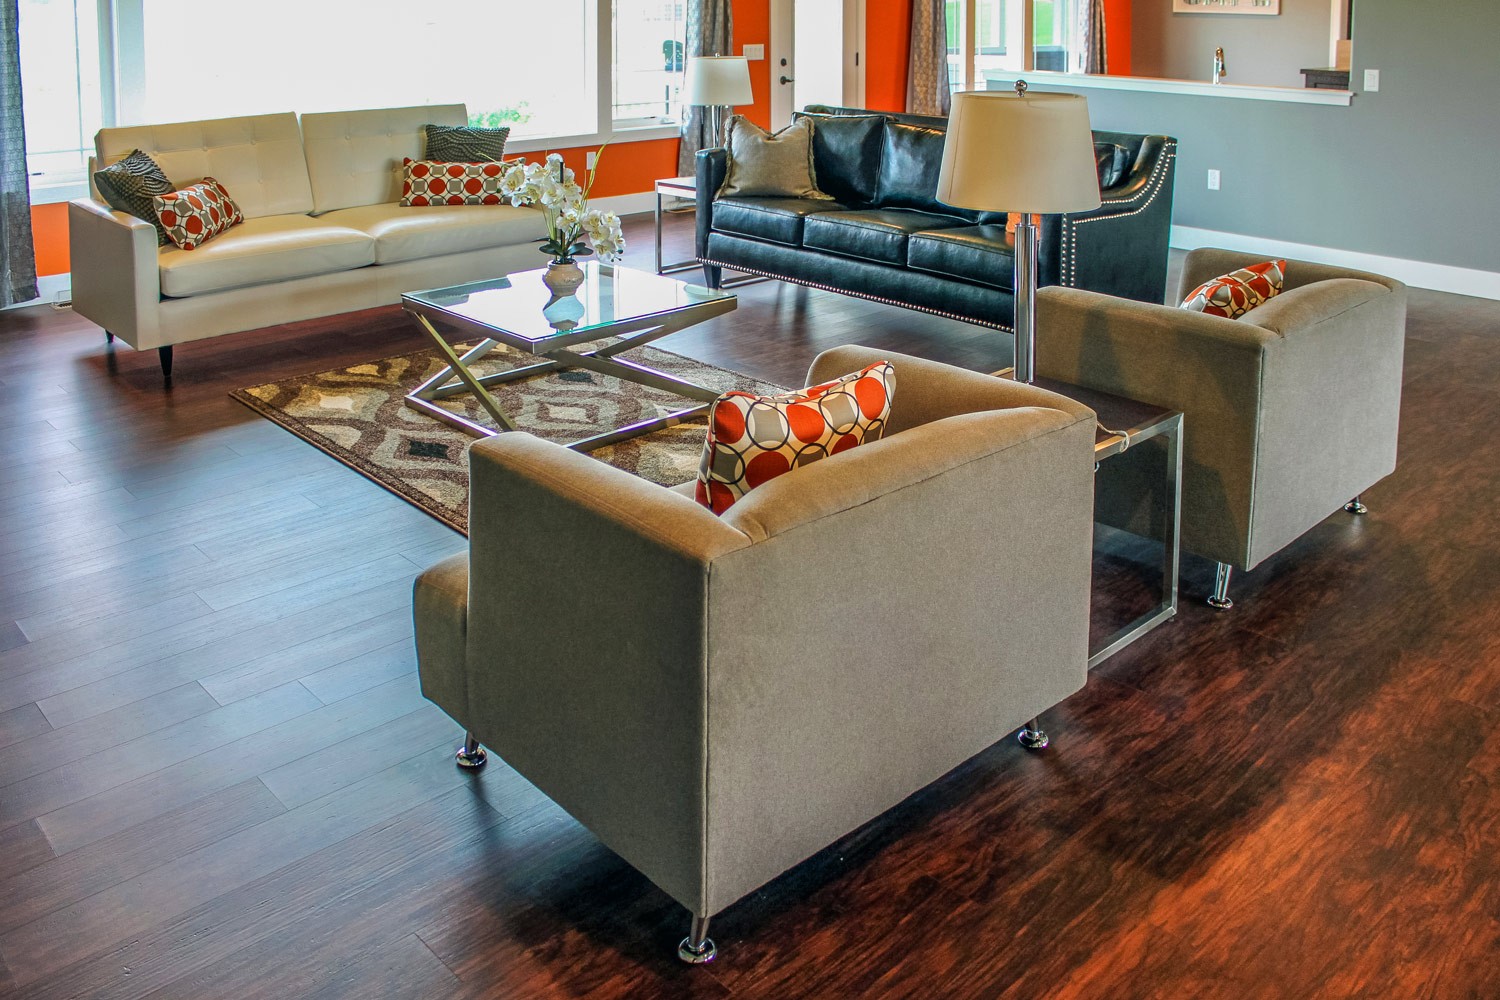 - A universal design living room will allow plenty of space around the furniture. Other considerations will include how the homeowner is able to sit, stand, transfer, and access their preferred seating position.